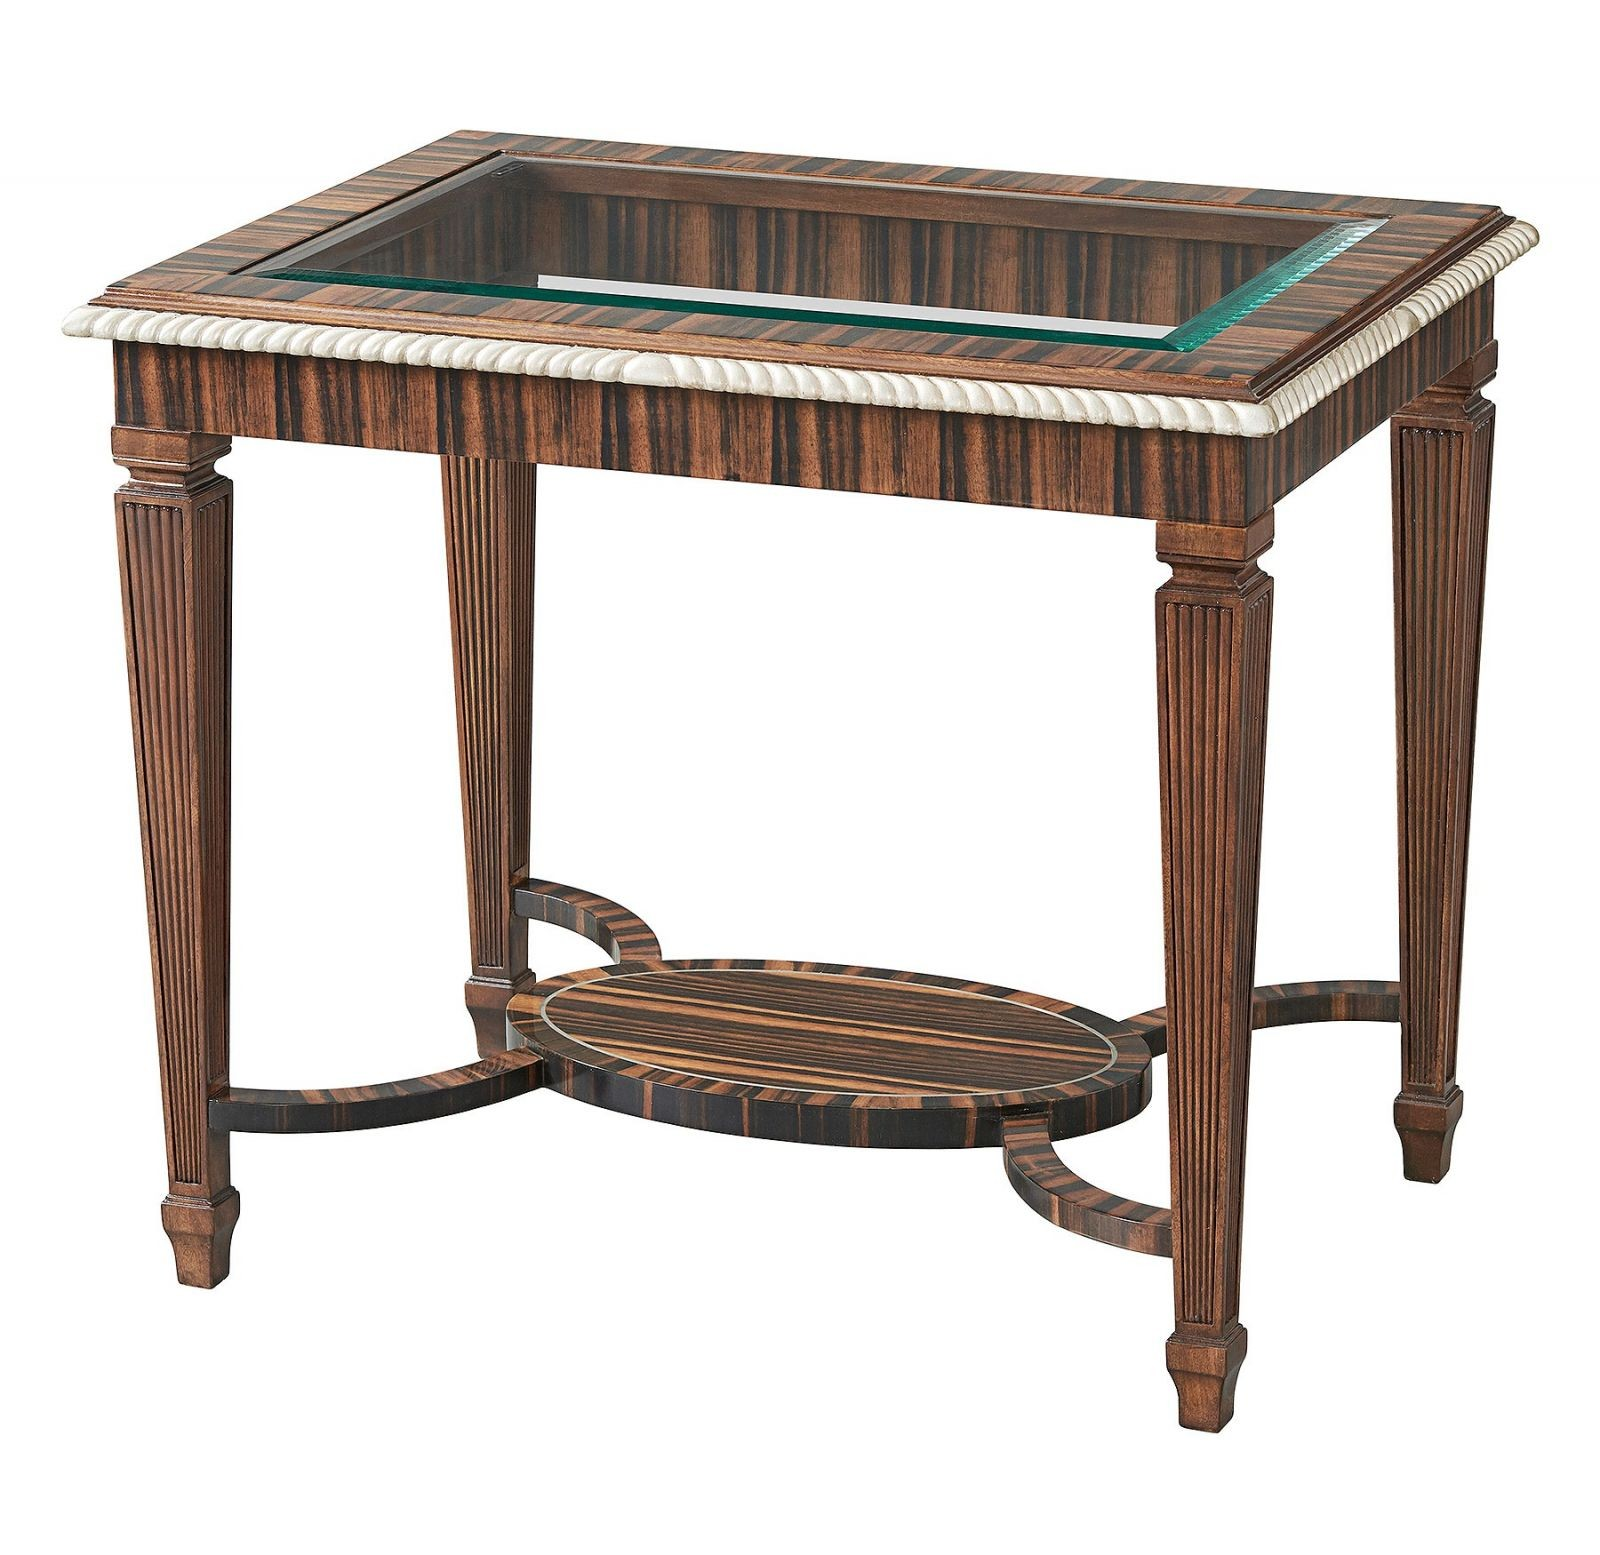 Ebony side or lamp table with glass top